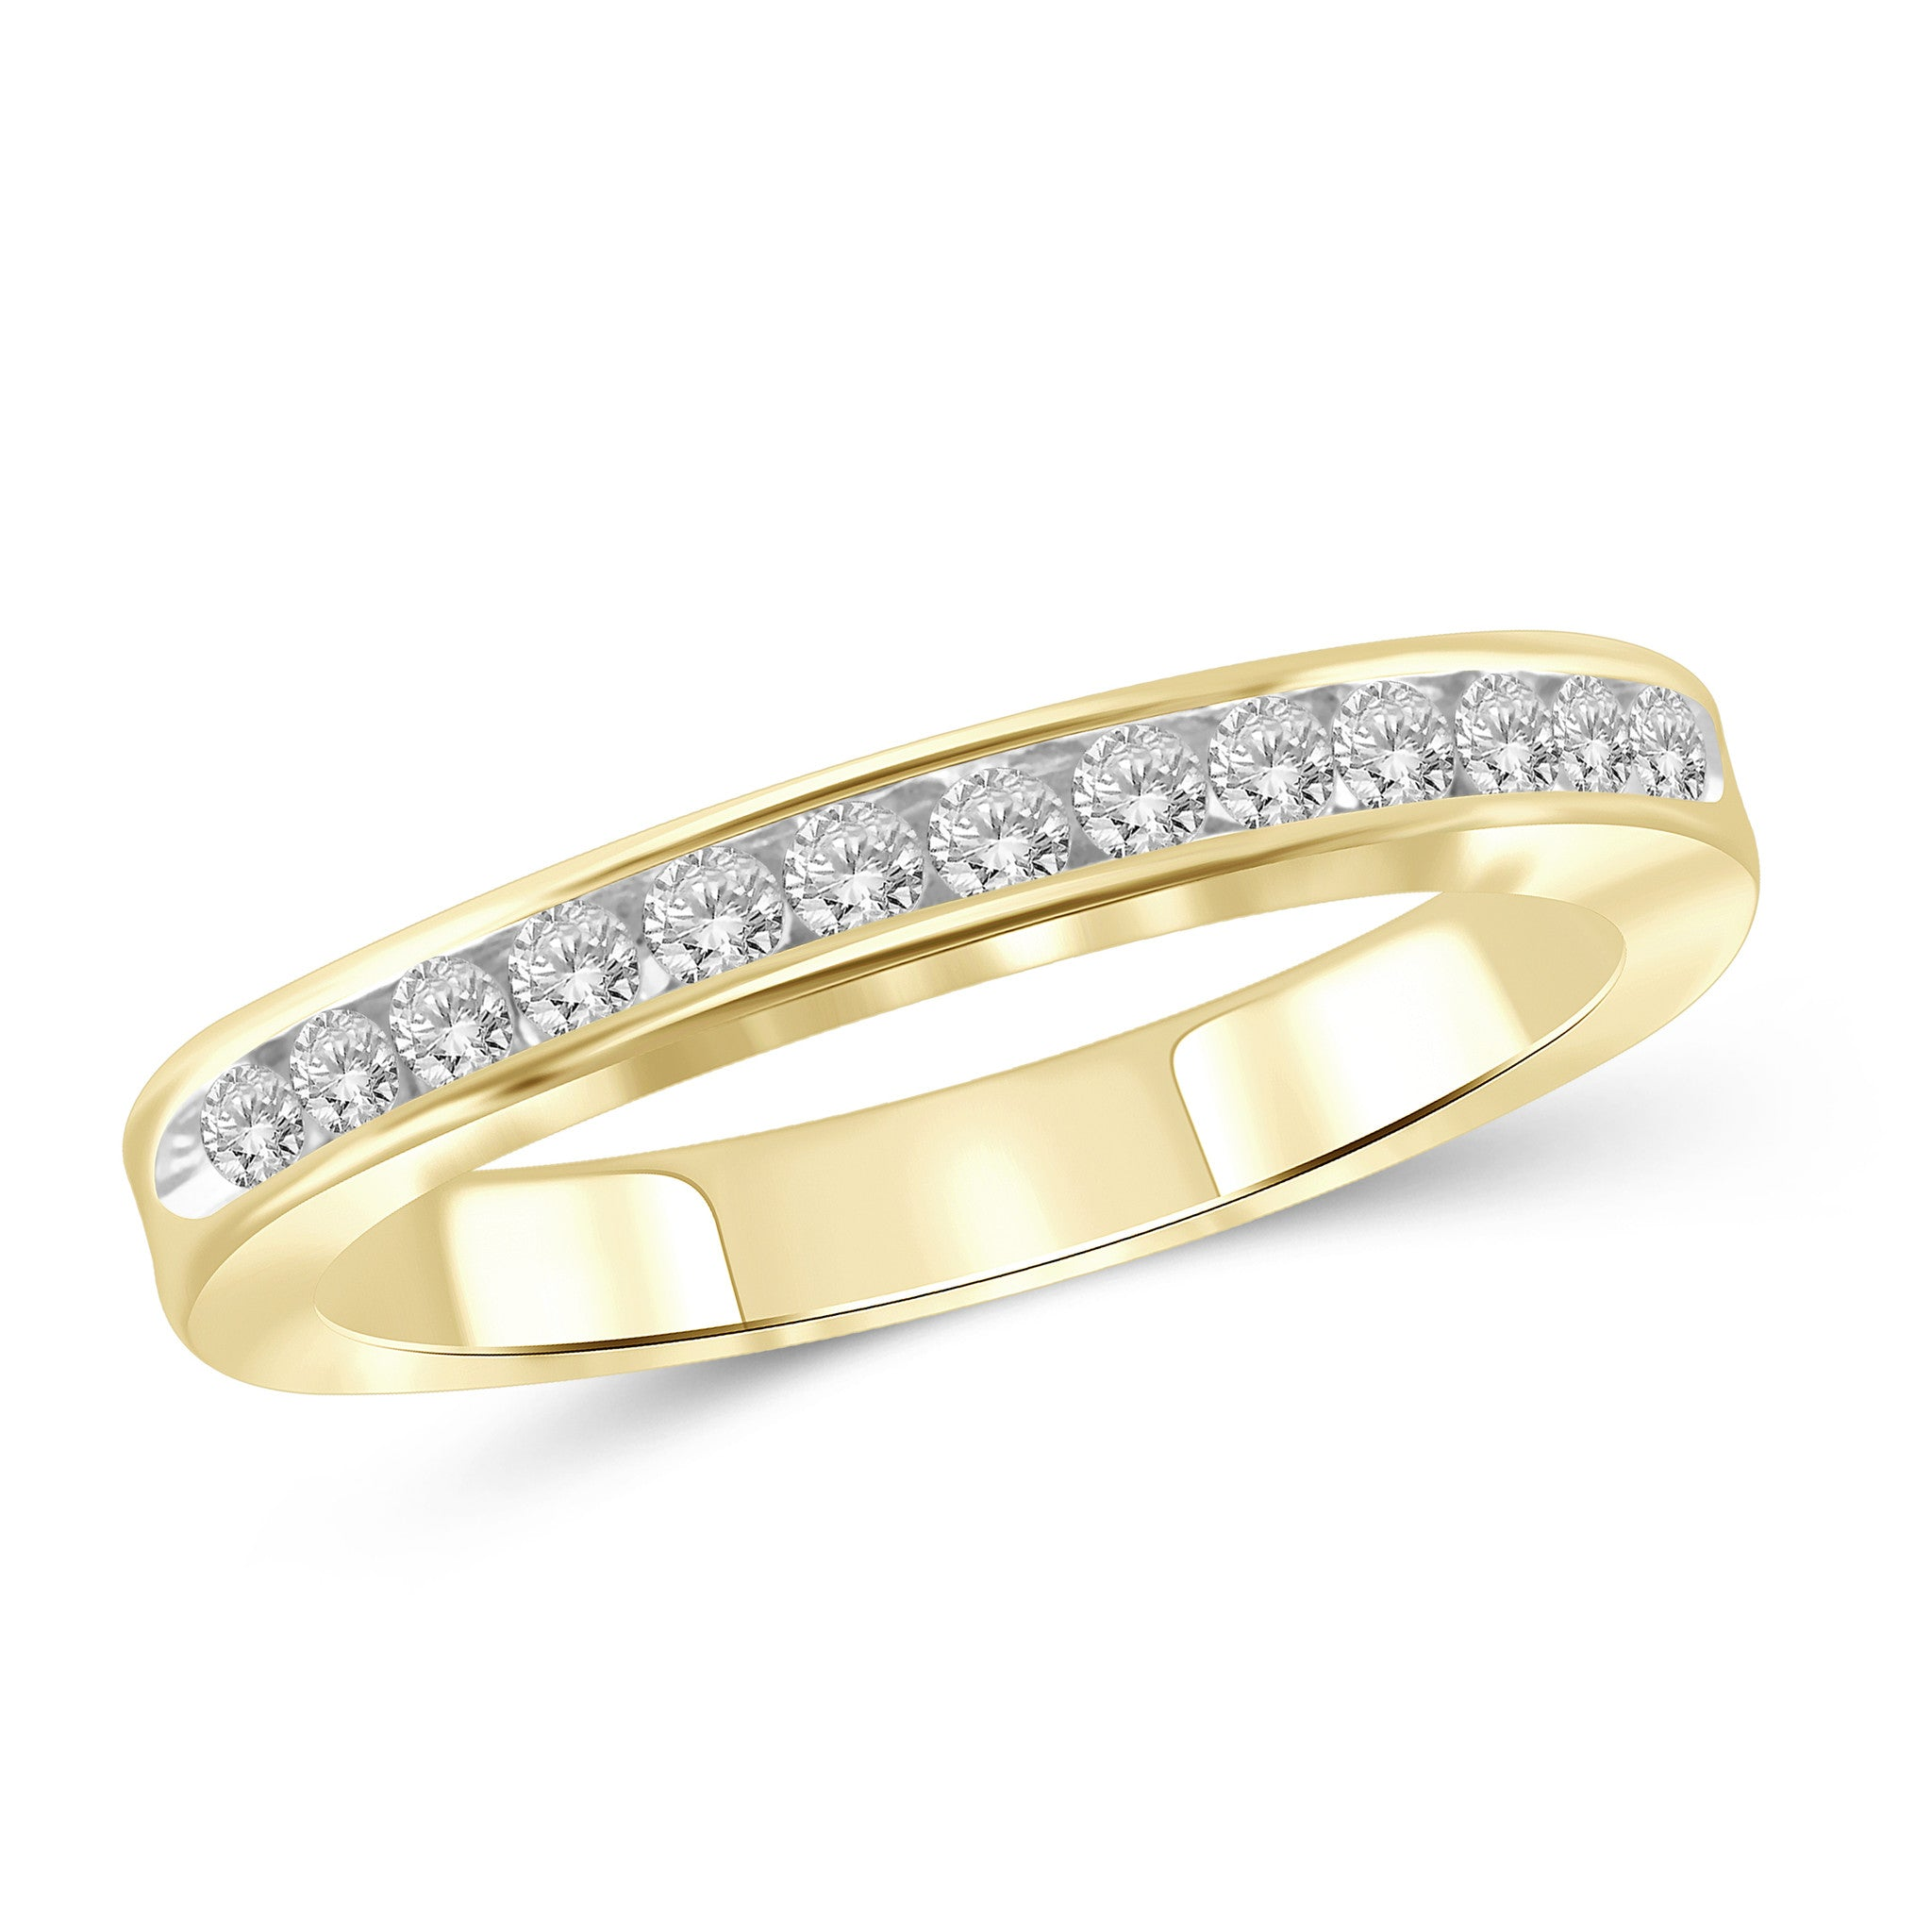 unisex for listing il woman hammered men gold bands wedding simple his band her yellow fullxfull